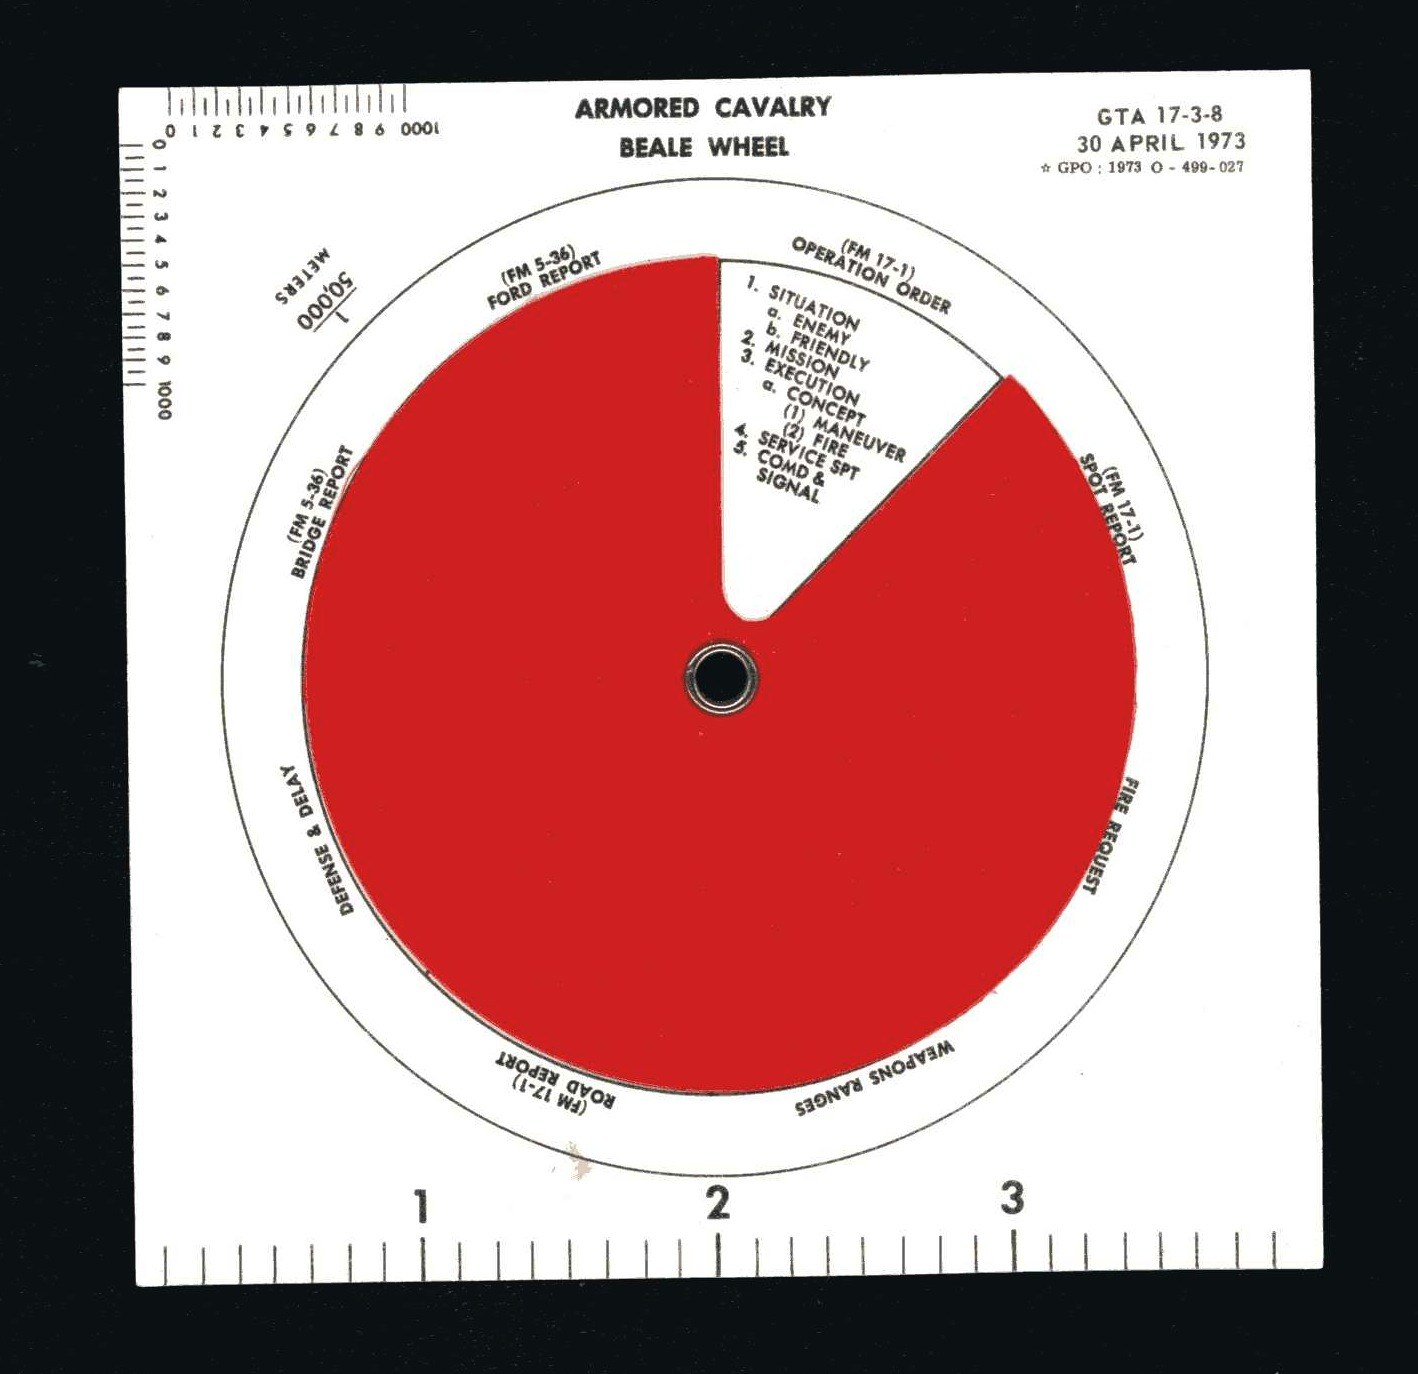 The Armoured Cavalry Beale Wheel   Calculating